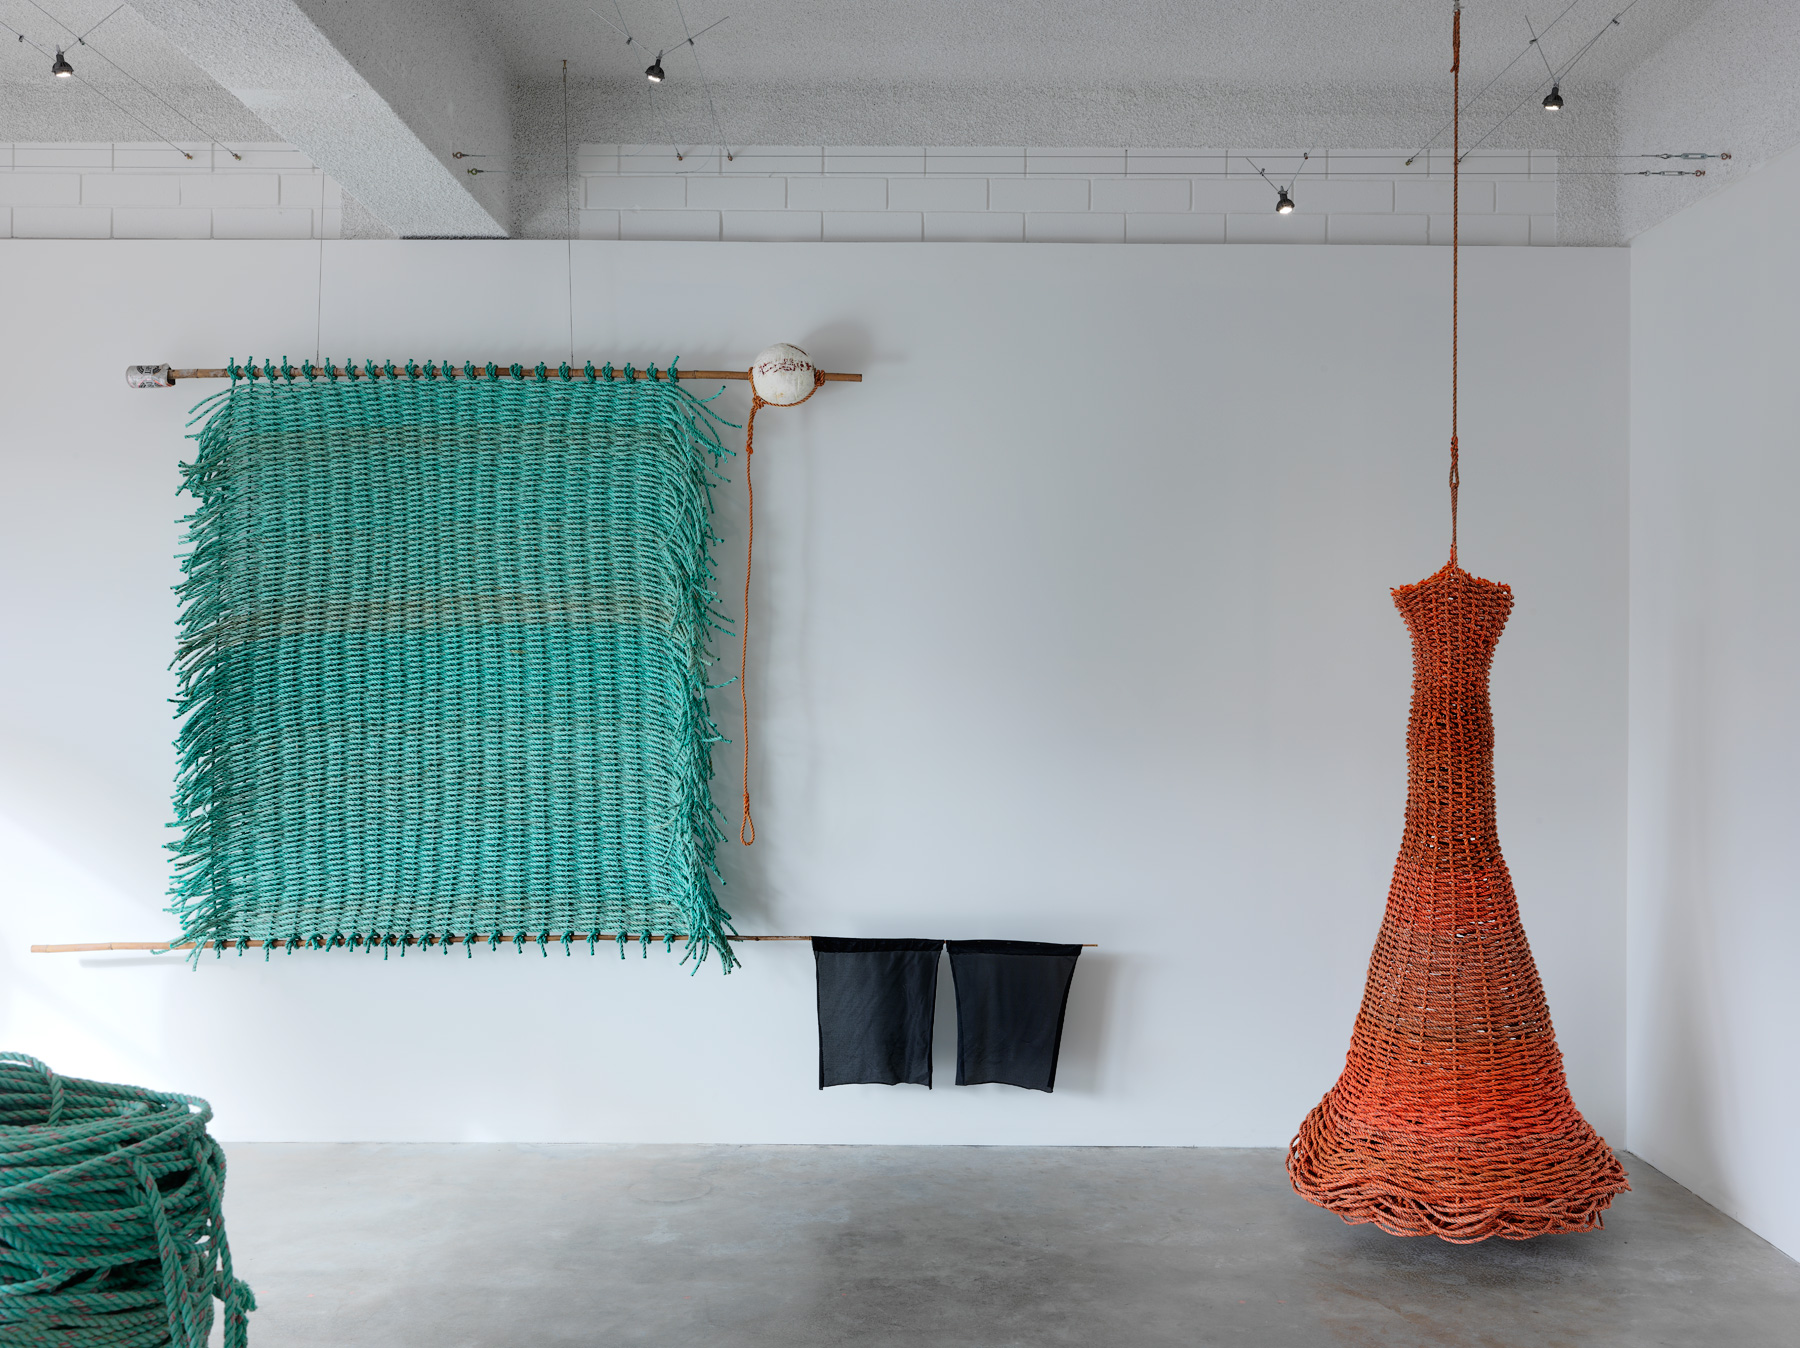 Deep Blue  (left) &  Snagged  (right)  2016  Discarded bamboo, nylon, rope, lead, aluminum can and float   Deep Blue  - 170 x 315 x 20cm   Snagged  - 187 x 80 x 80cm  photographer Grant Hancock